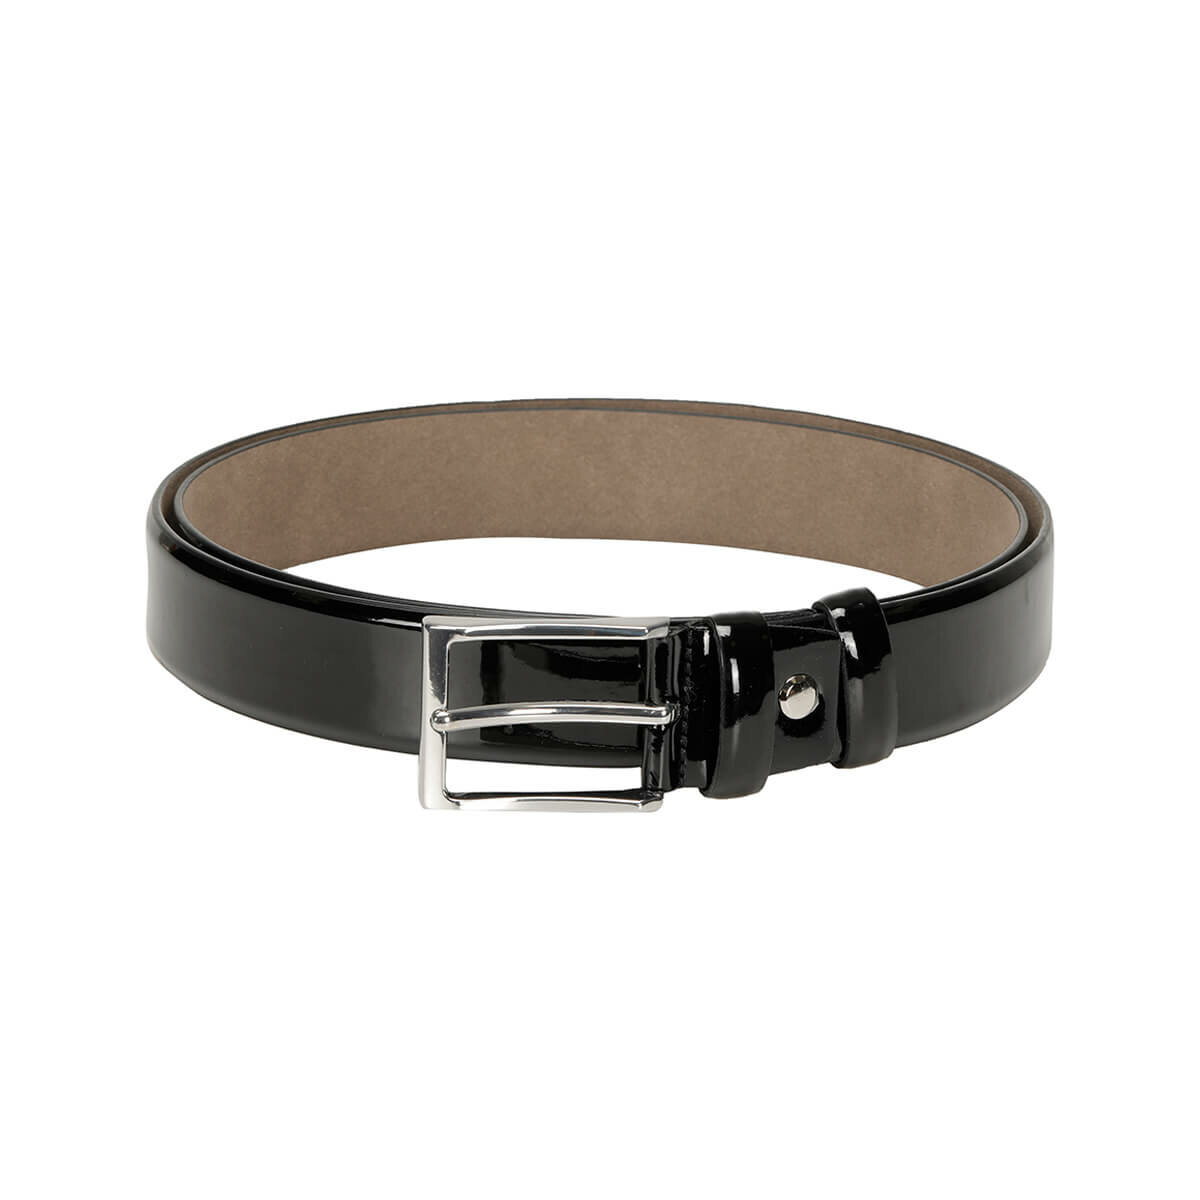 FLO MKNYL3401 Black Male Belt Garamond